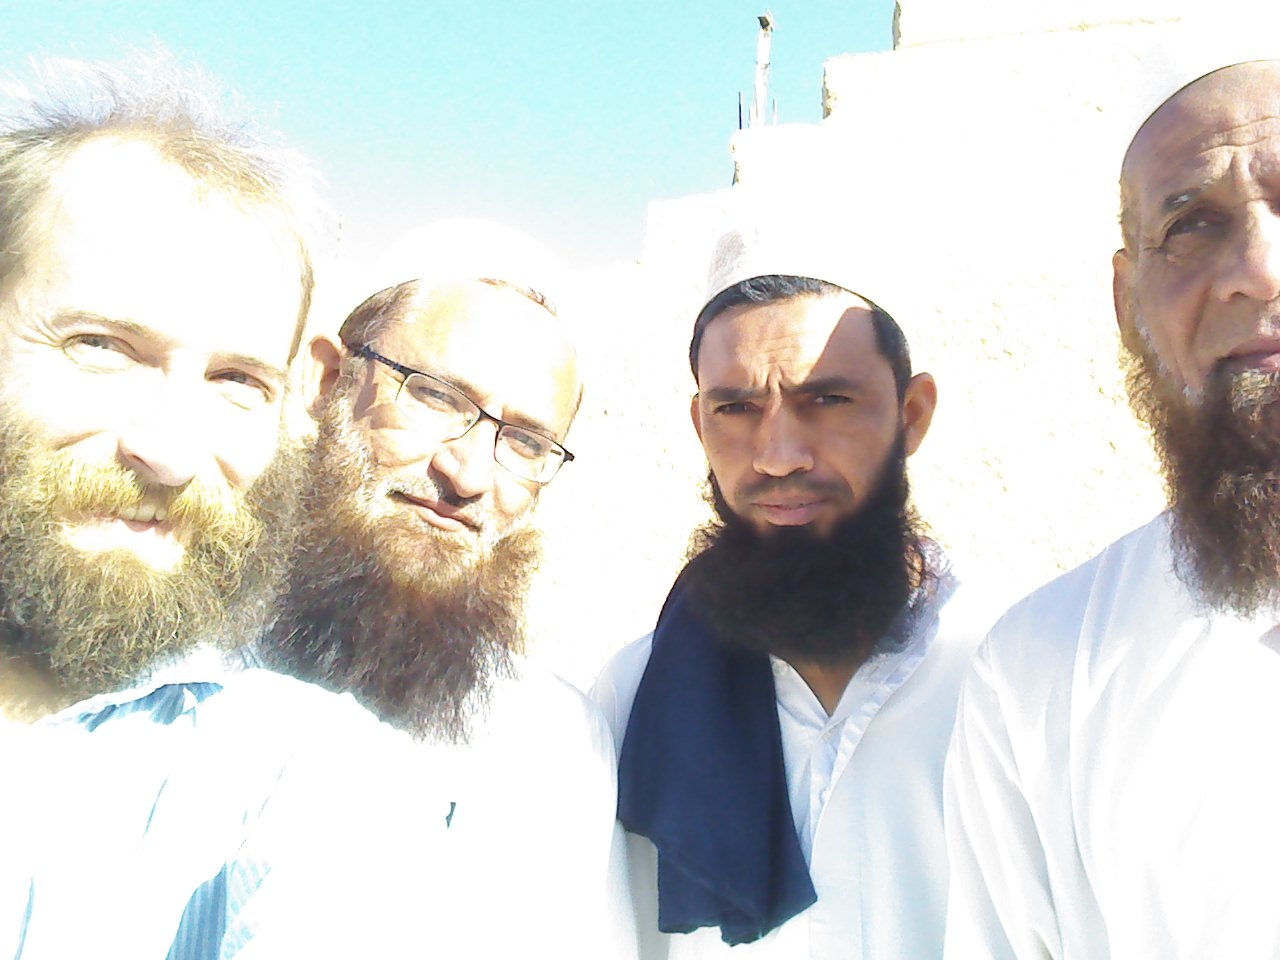 Stephen Matthews (left) with three Muslim gentlemen in Atar, Mauritania.